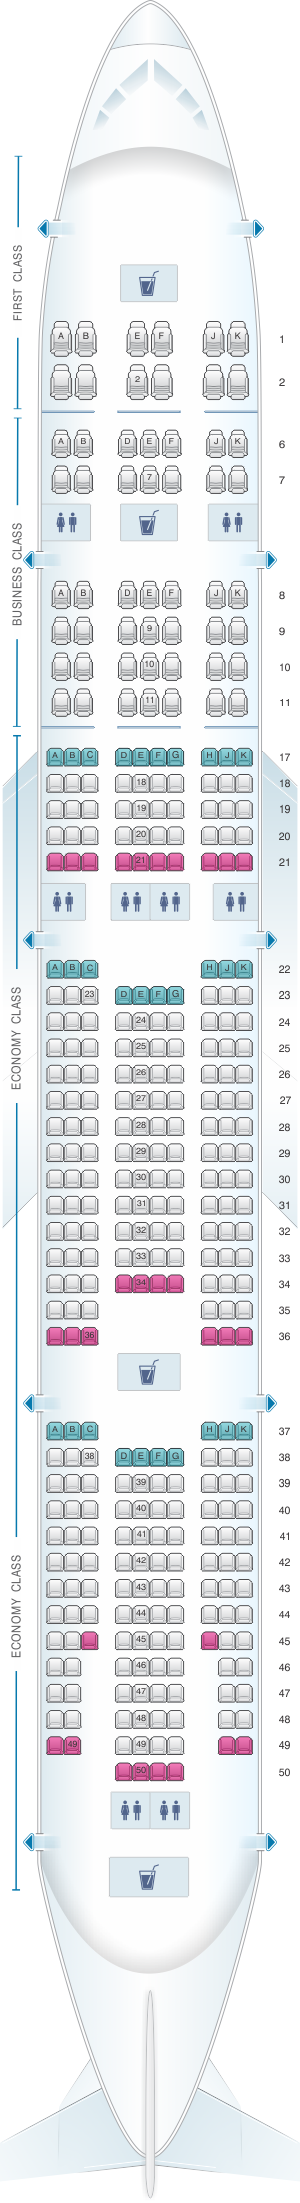 Seat map for Emirates Boeing B777 300